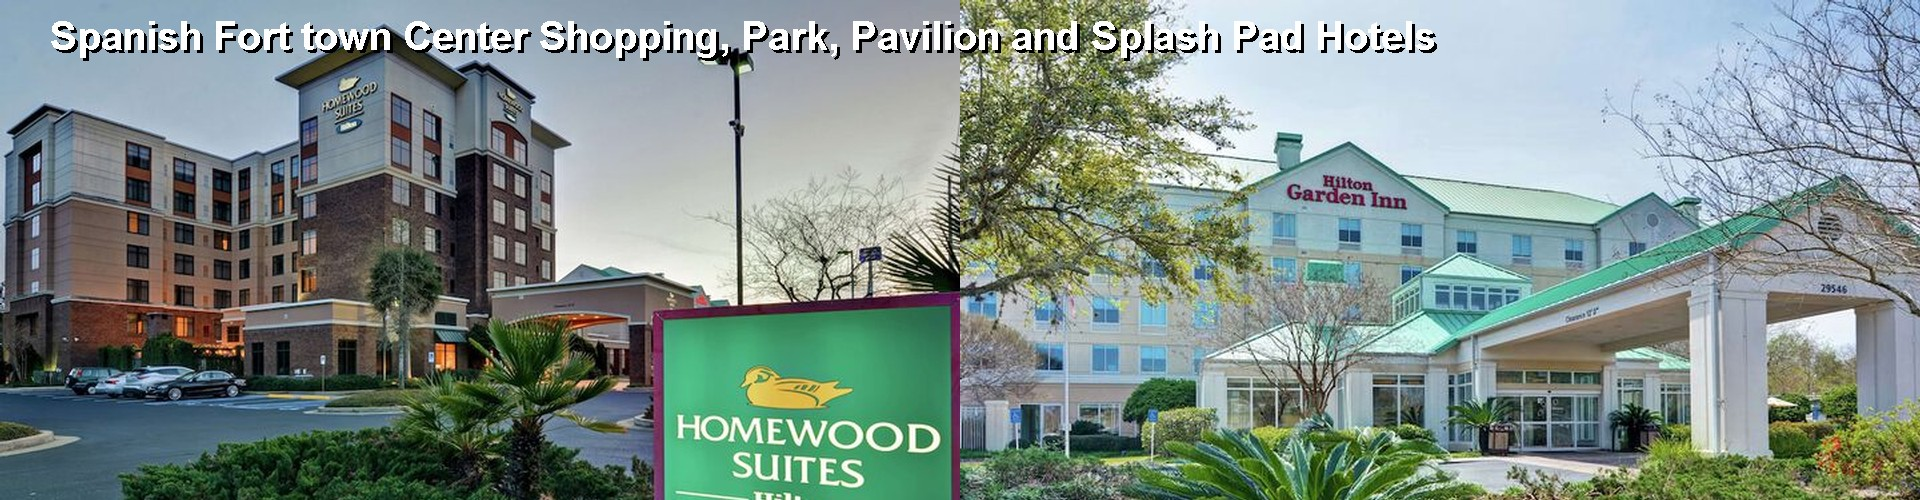 5 Best Hotels Near Spanish Fort Town Center Ping Park Pavilion And Splash Pad